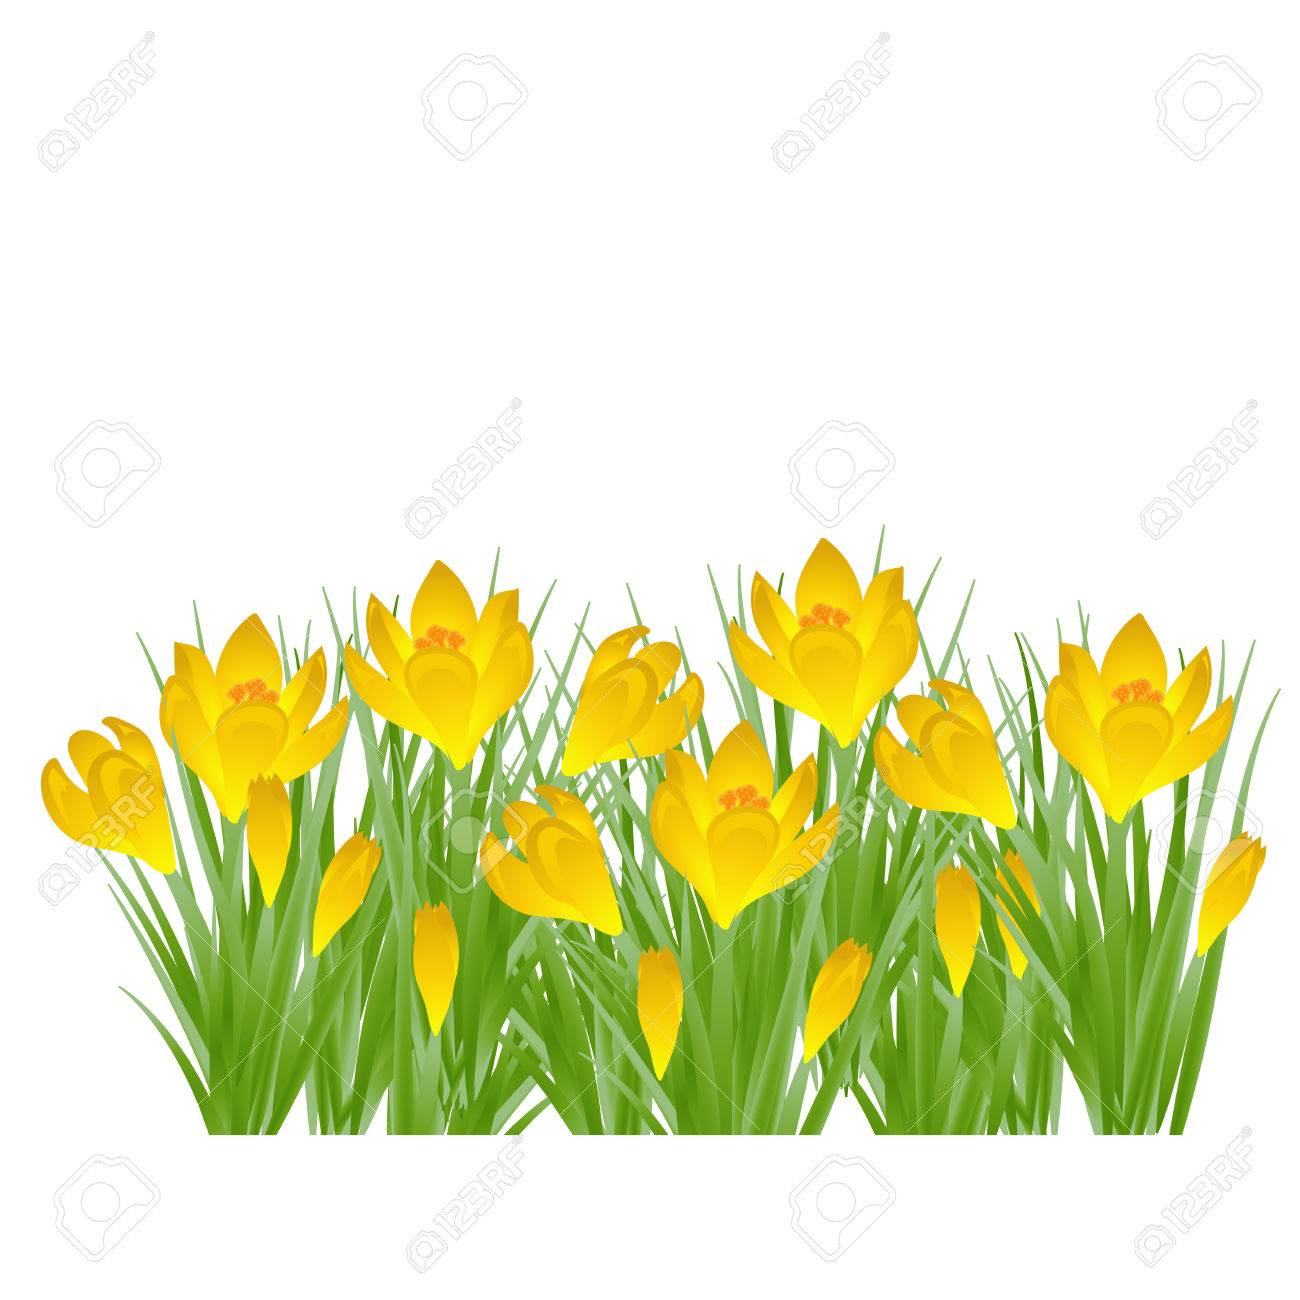 Early spring yellow flower crocus for easter on white background early spring yellow flower crocus for easter on white background vector illustration stockfoto 75072792 mightylinksfo